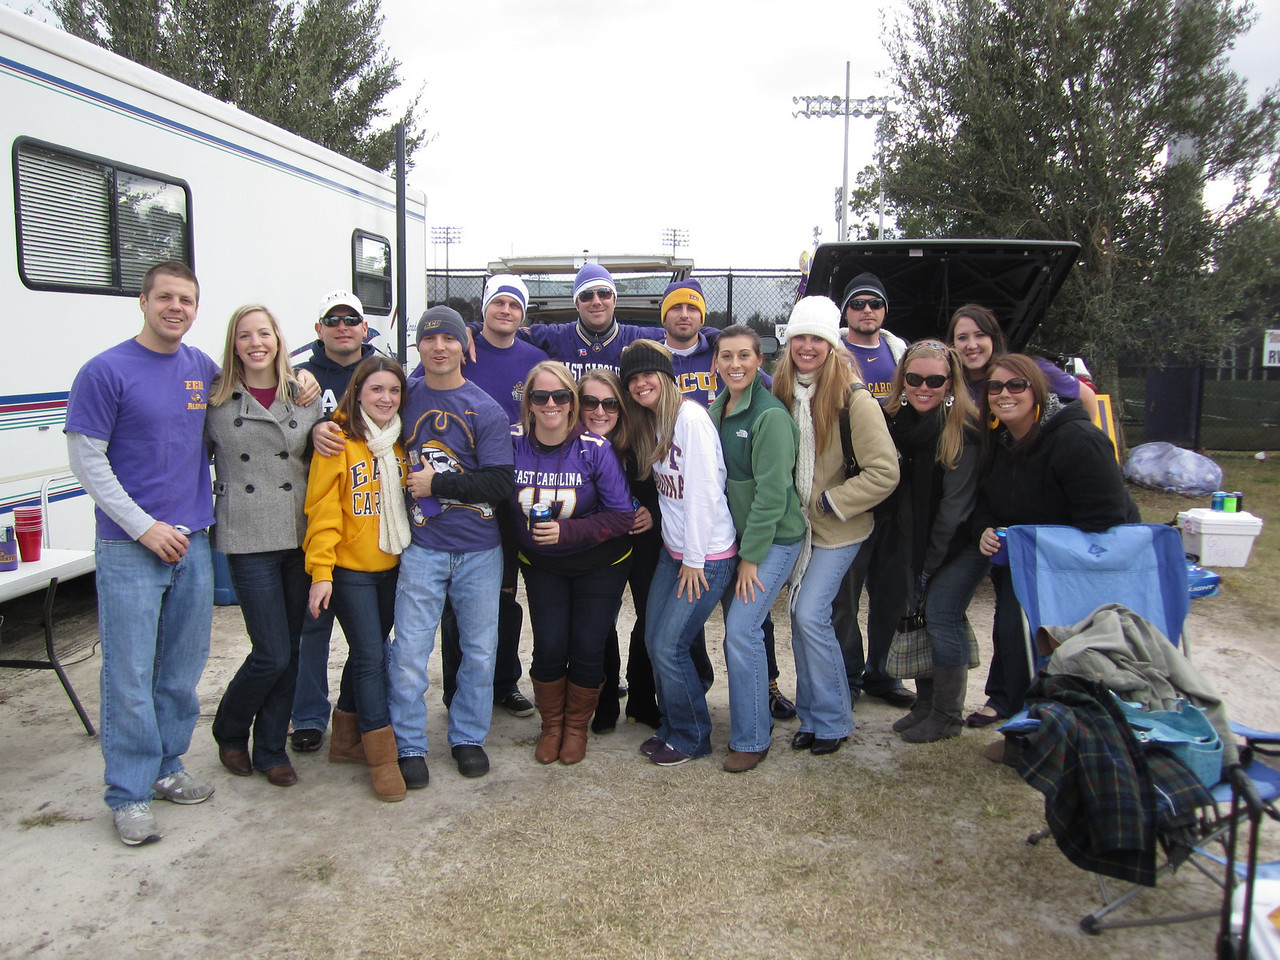 11/5/2011 ECU vs Southern Miss - Ross, Erin, Jon, Heather, Chris, Chuck, Anne-Stewart, Preston, Jen, Billy, Marisa, Staci, Lauren